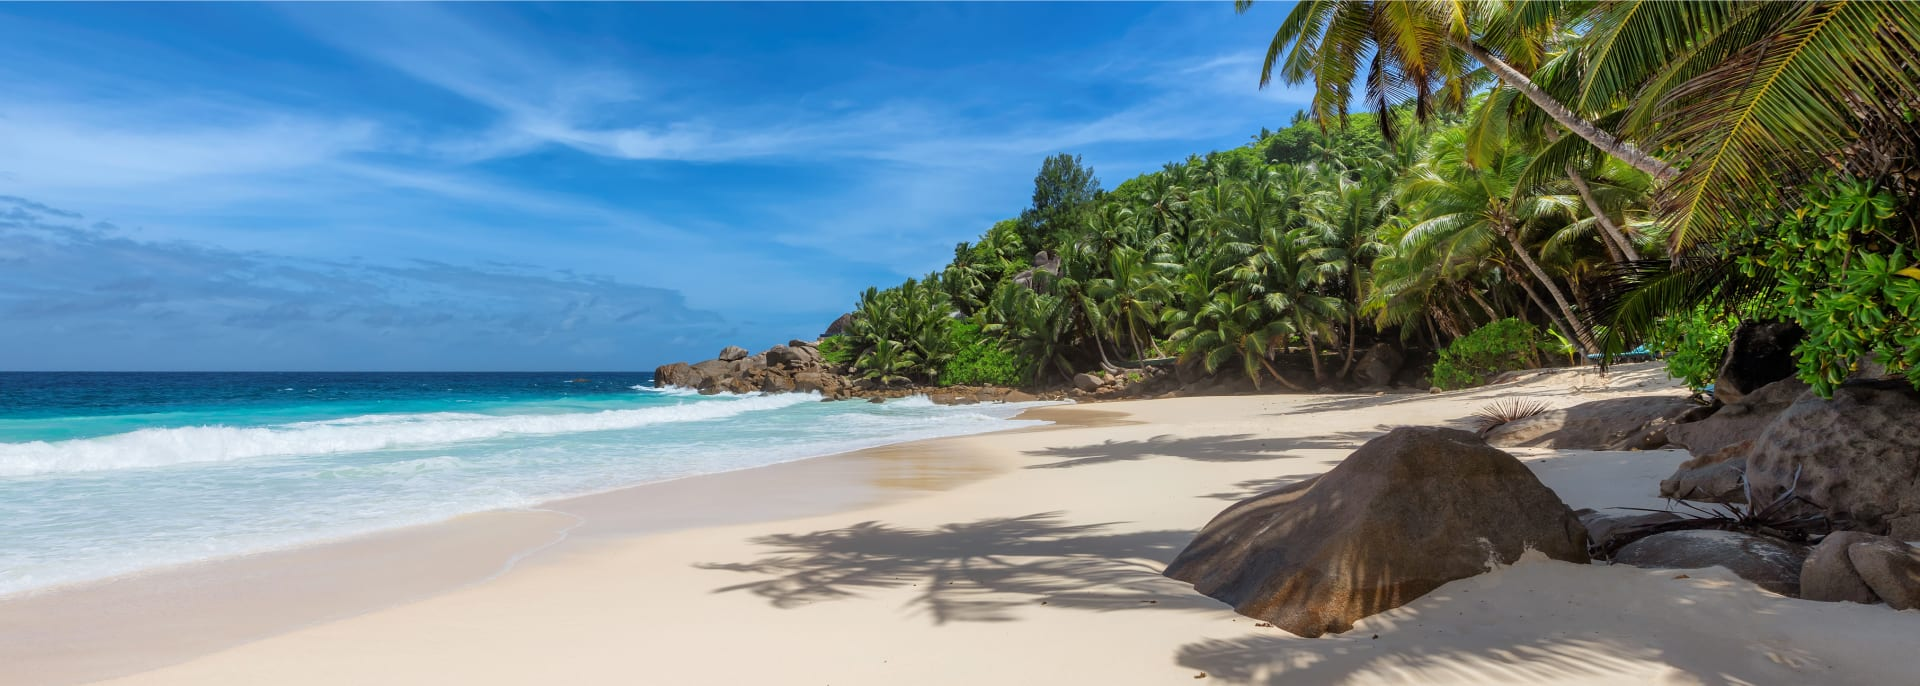 Palm trees on white sandy beach and turquoise sea in paradise island, Seychelles